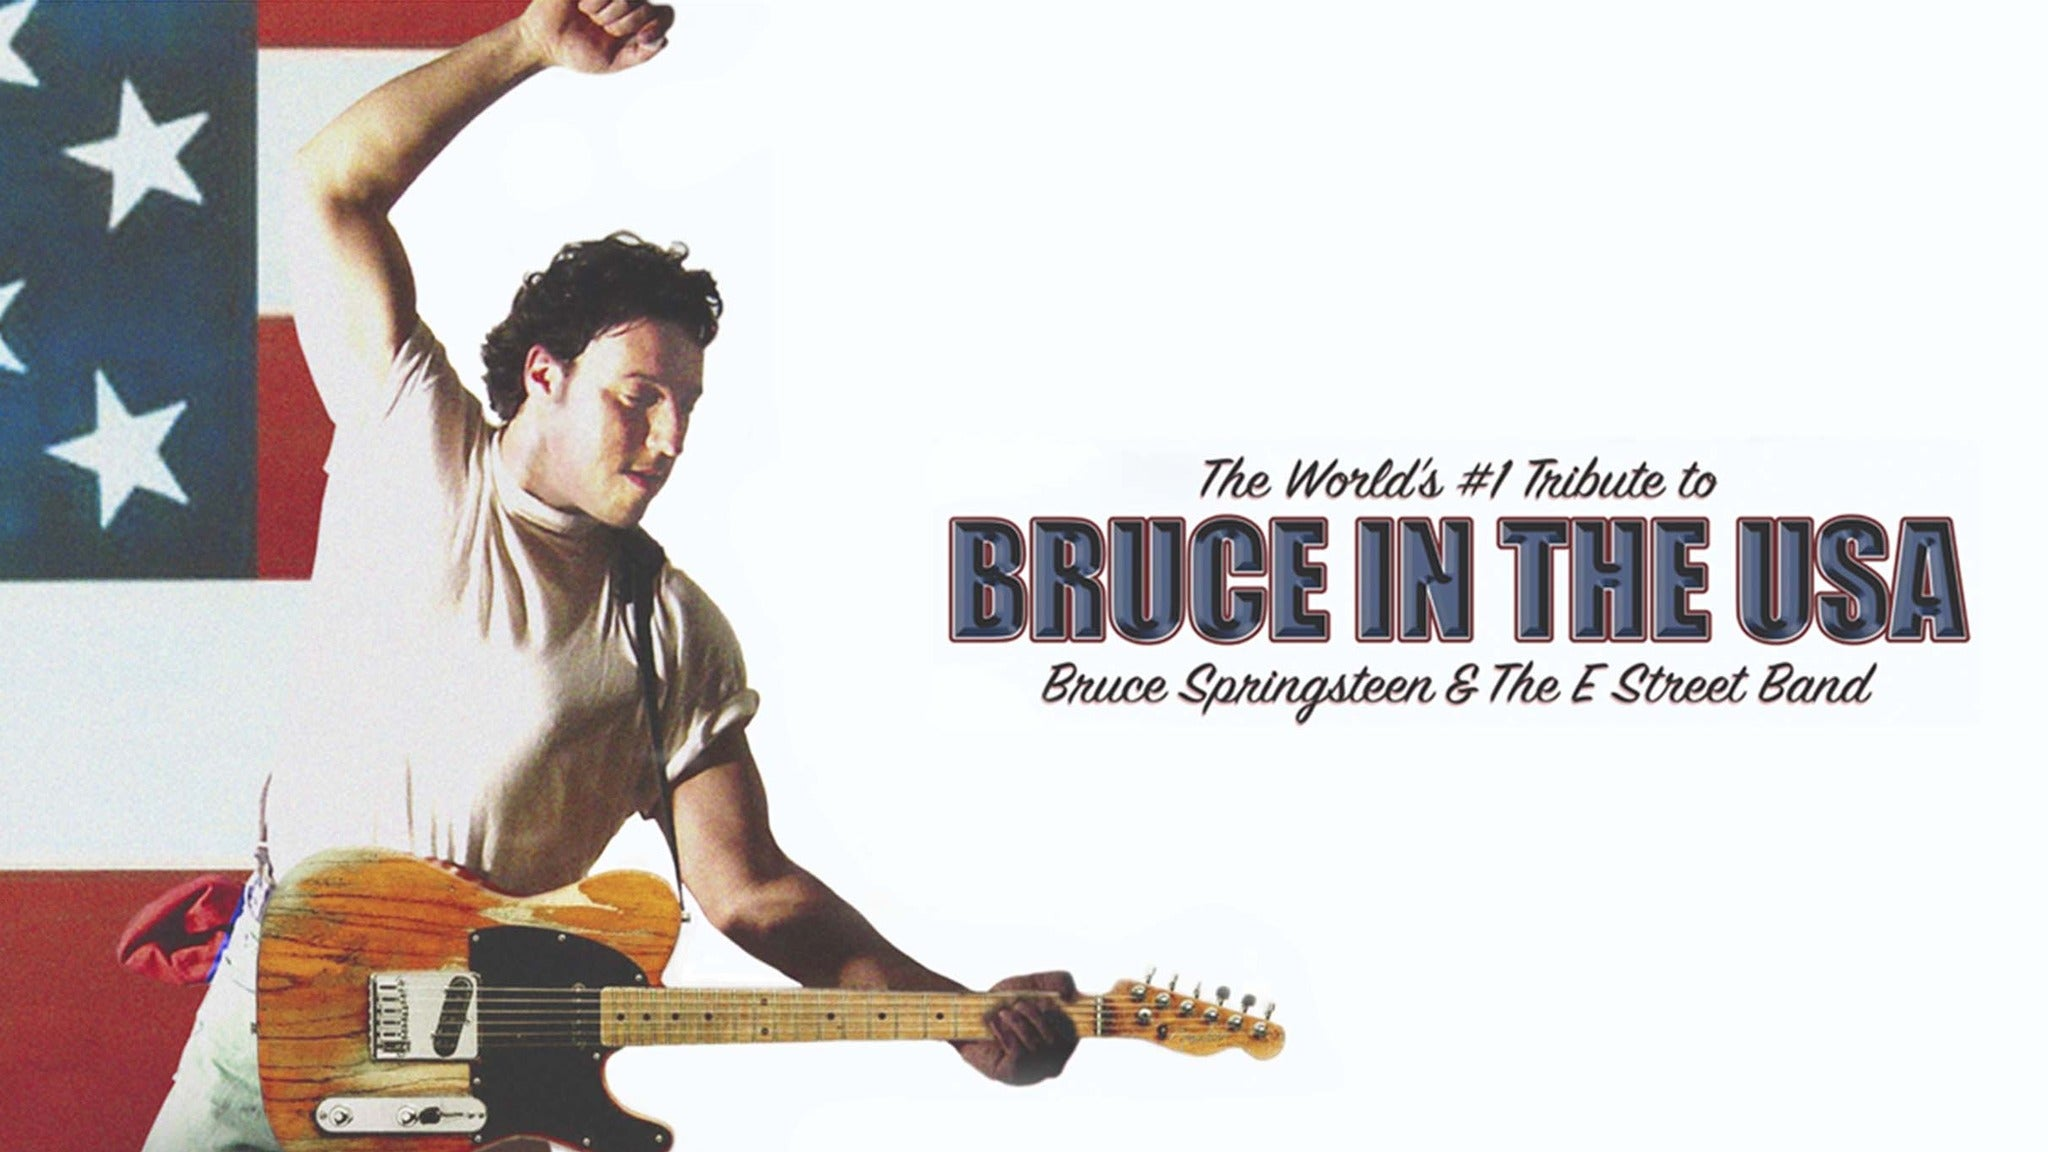 Bruce in the USA at Scottish Rite Auditorium - Collingswood, NJ 08108